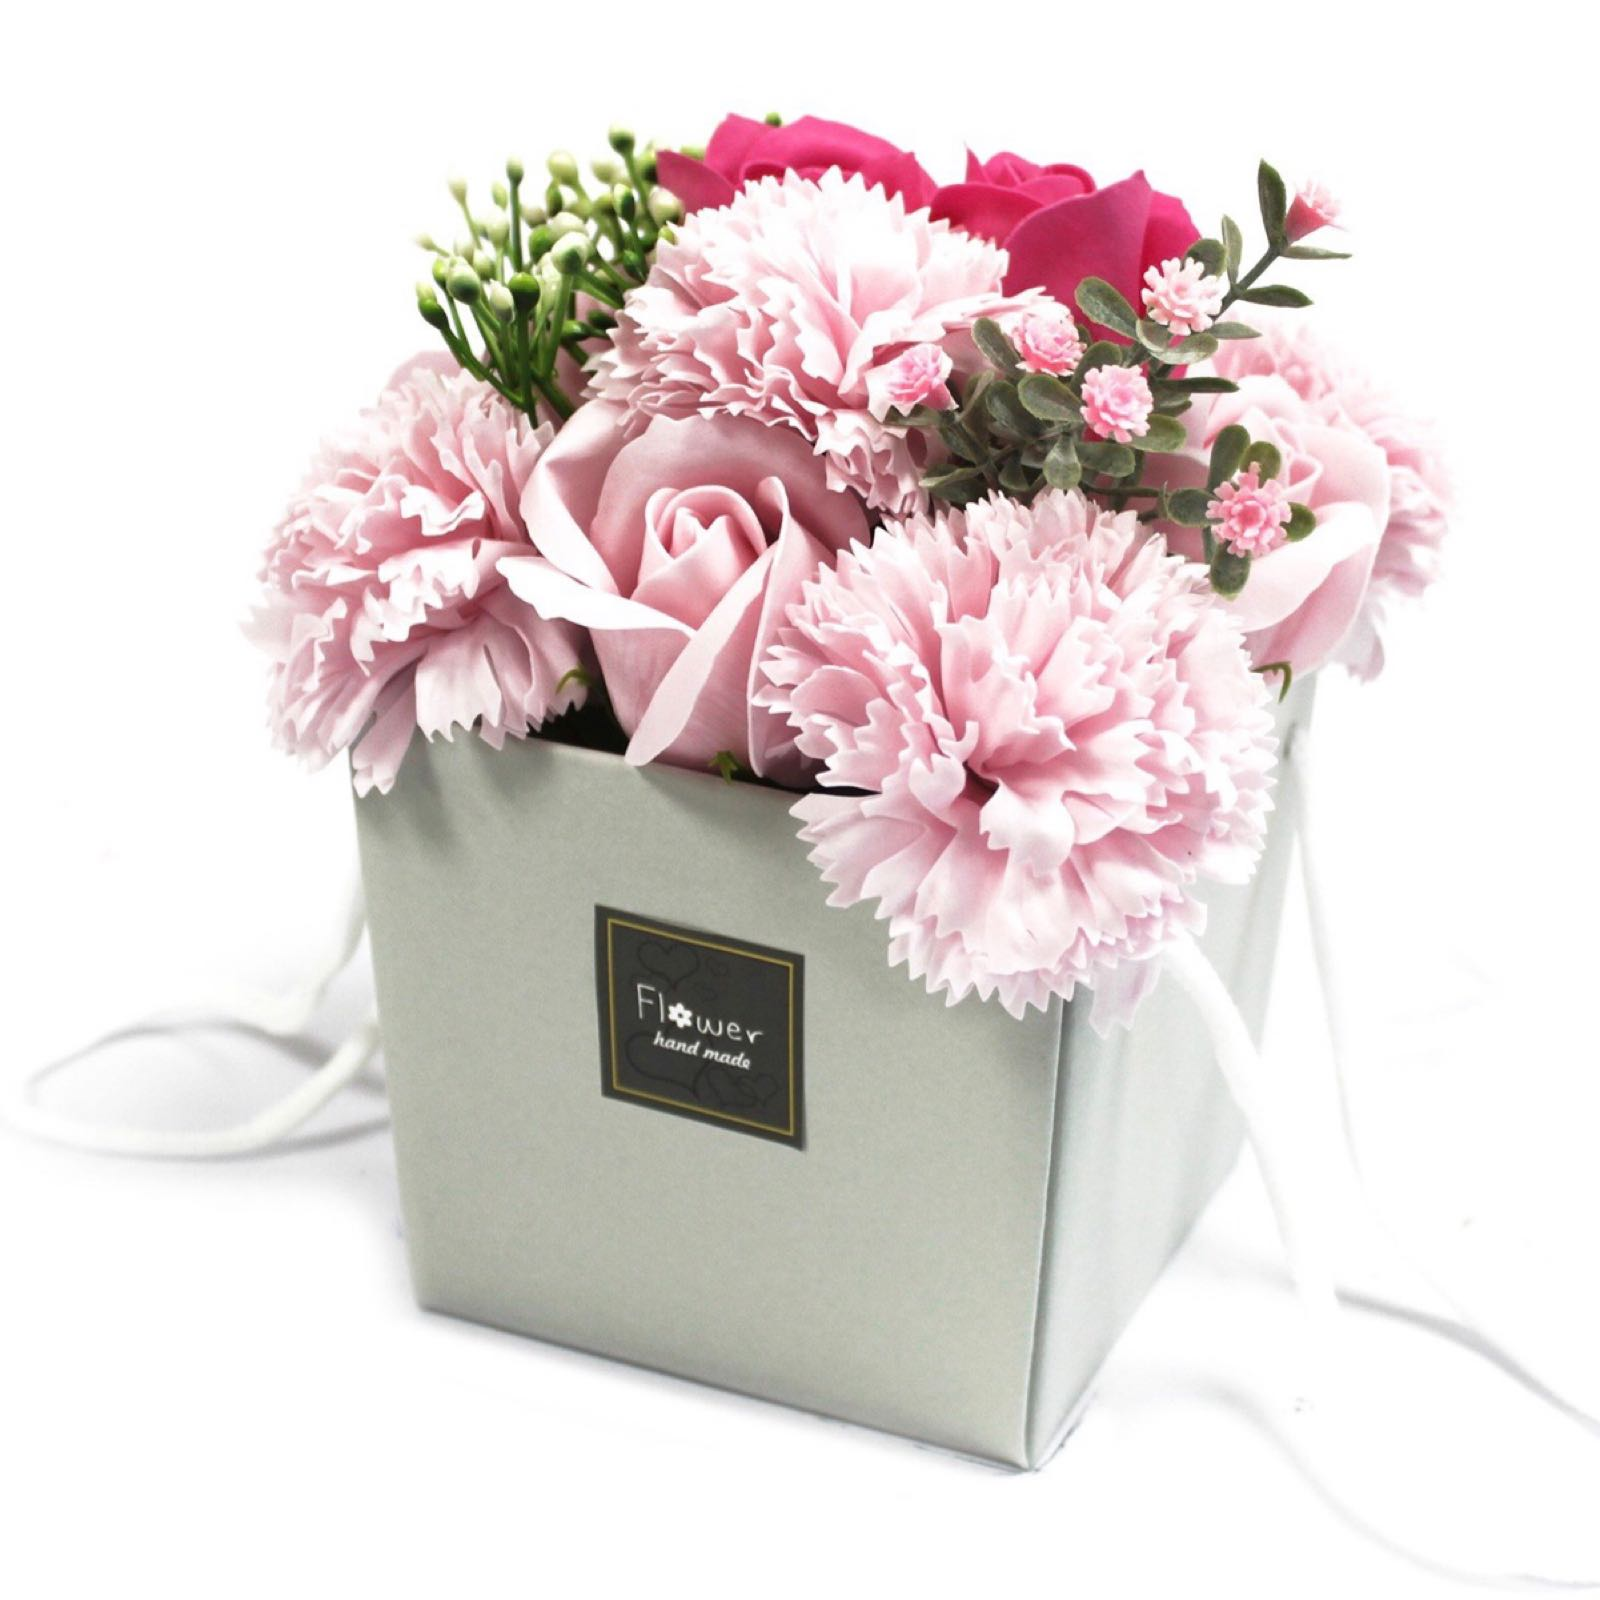 Soap Flower Bouquet - Pink Rose & Carnation (Was £13.50)